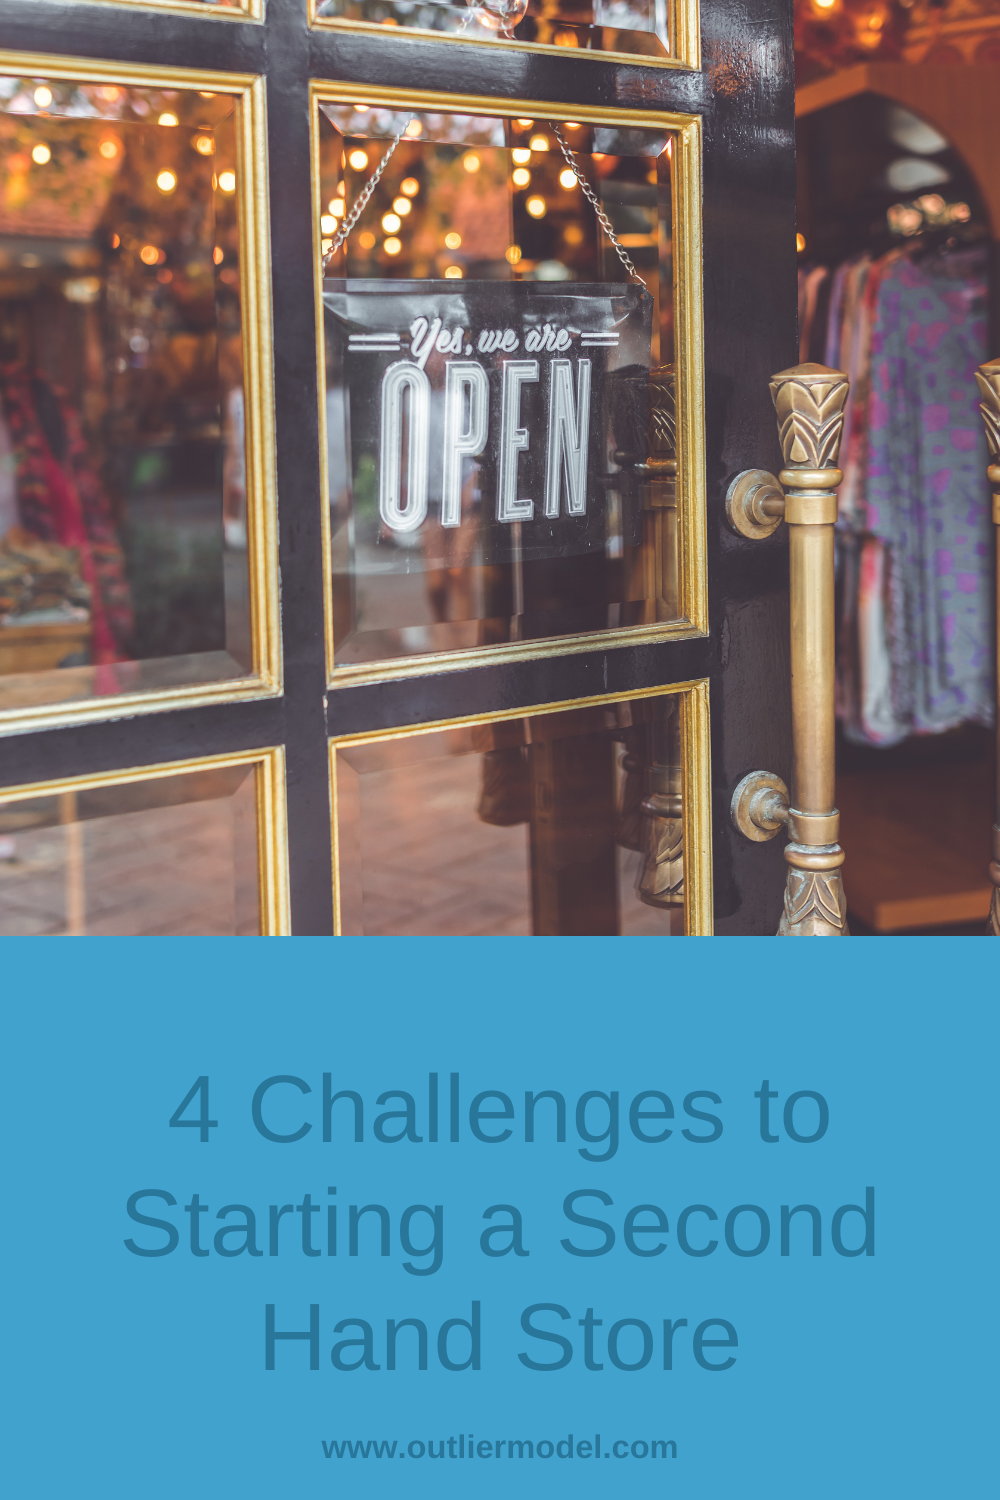 4 Challenges to Starting a Second Hand Store